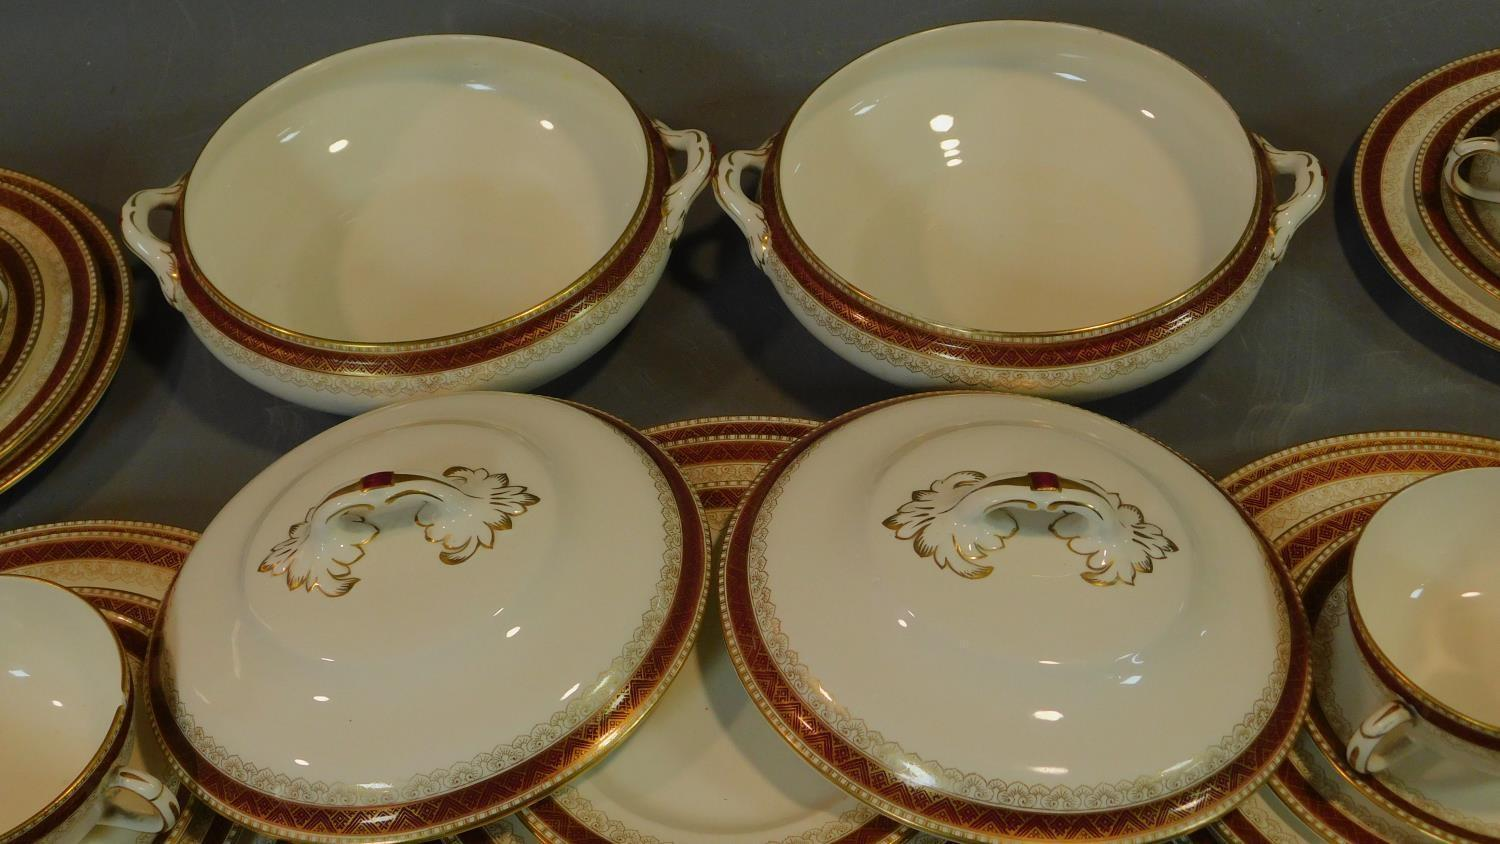 A Loselware part dinner service, dinner plates, side plates, soup bowls, tureens etc. - Image 2 of 6